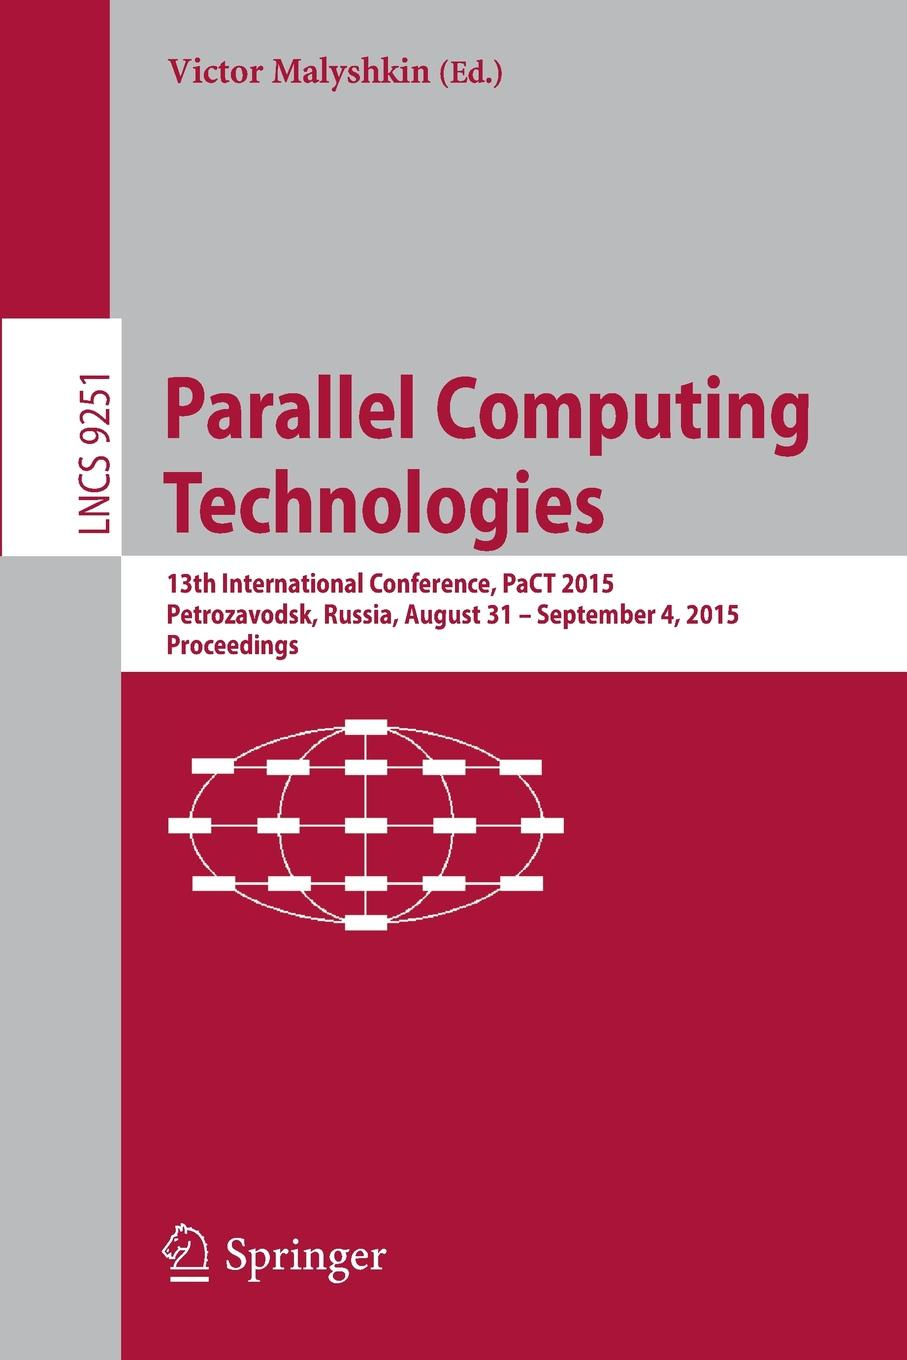 Parallel Computing Technologies. 13th International Conference, PaCT 2015, Petrozavodsk, Russia, August 31-September 4, 2015, Proceedings blood pact